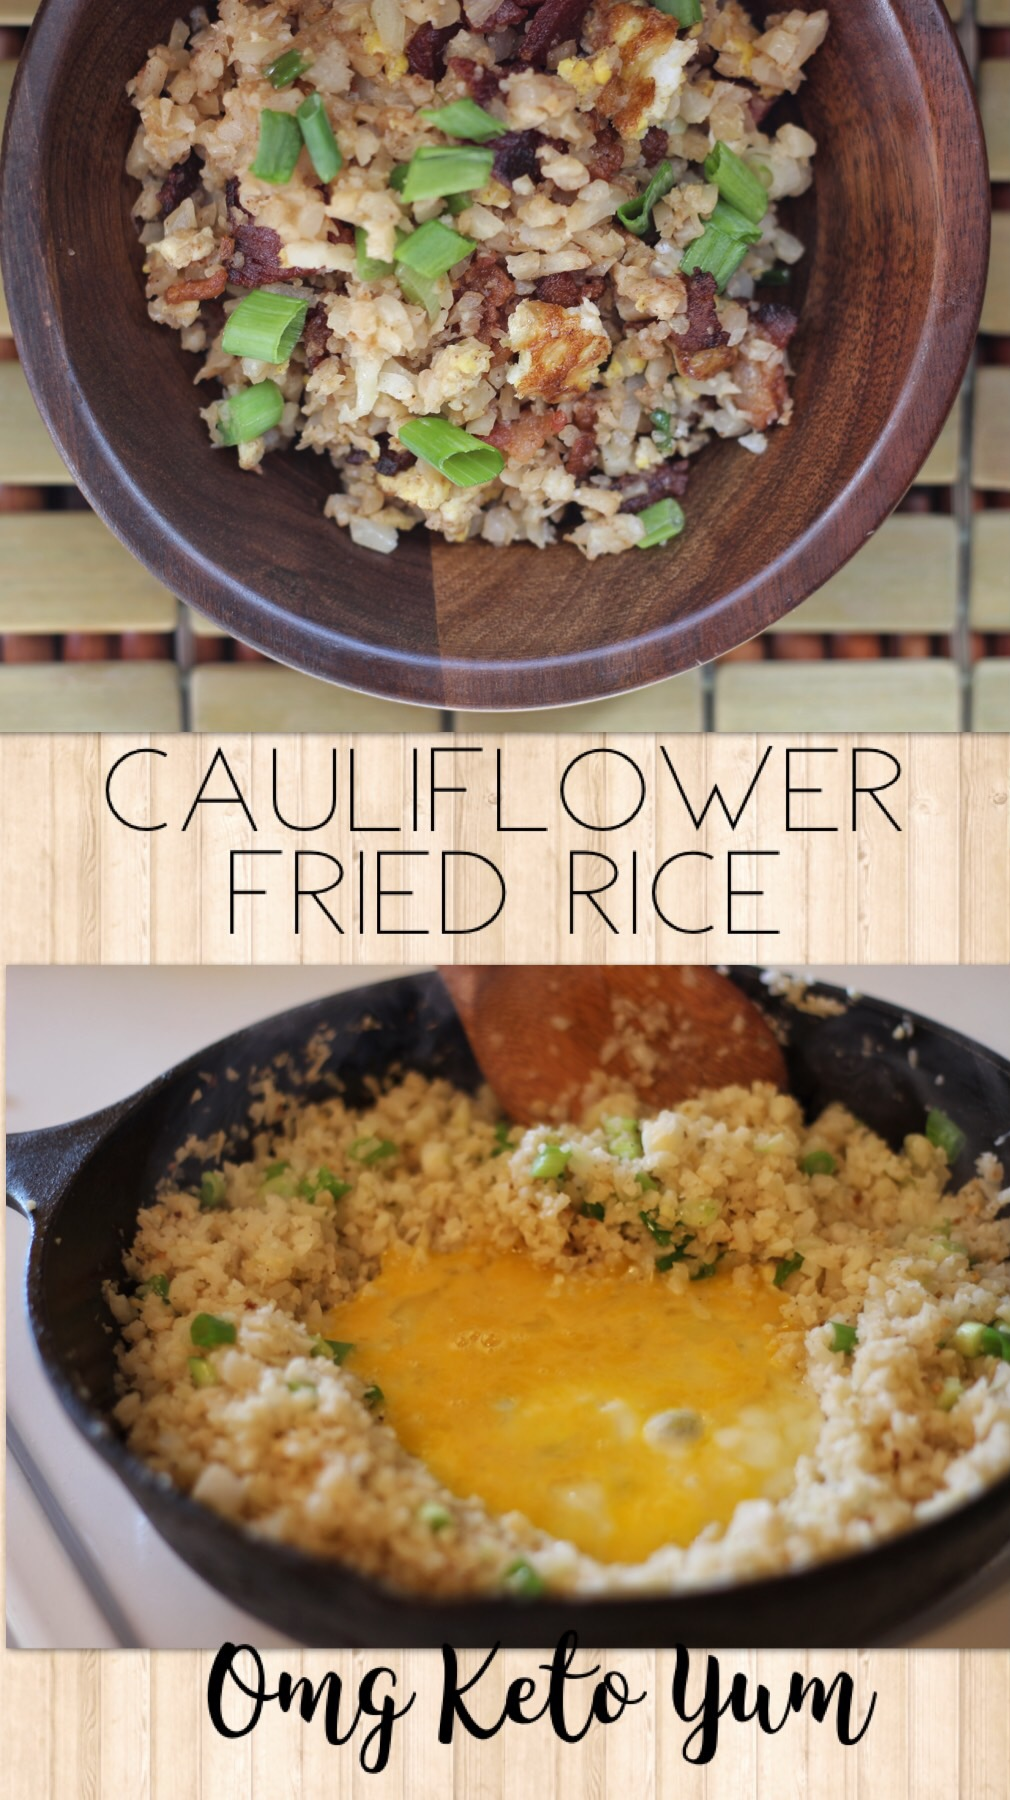 Cauliflower Fried Rice - Keto, low carb, Paleo